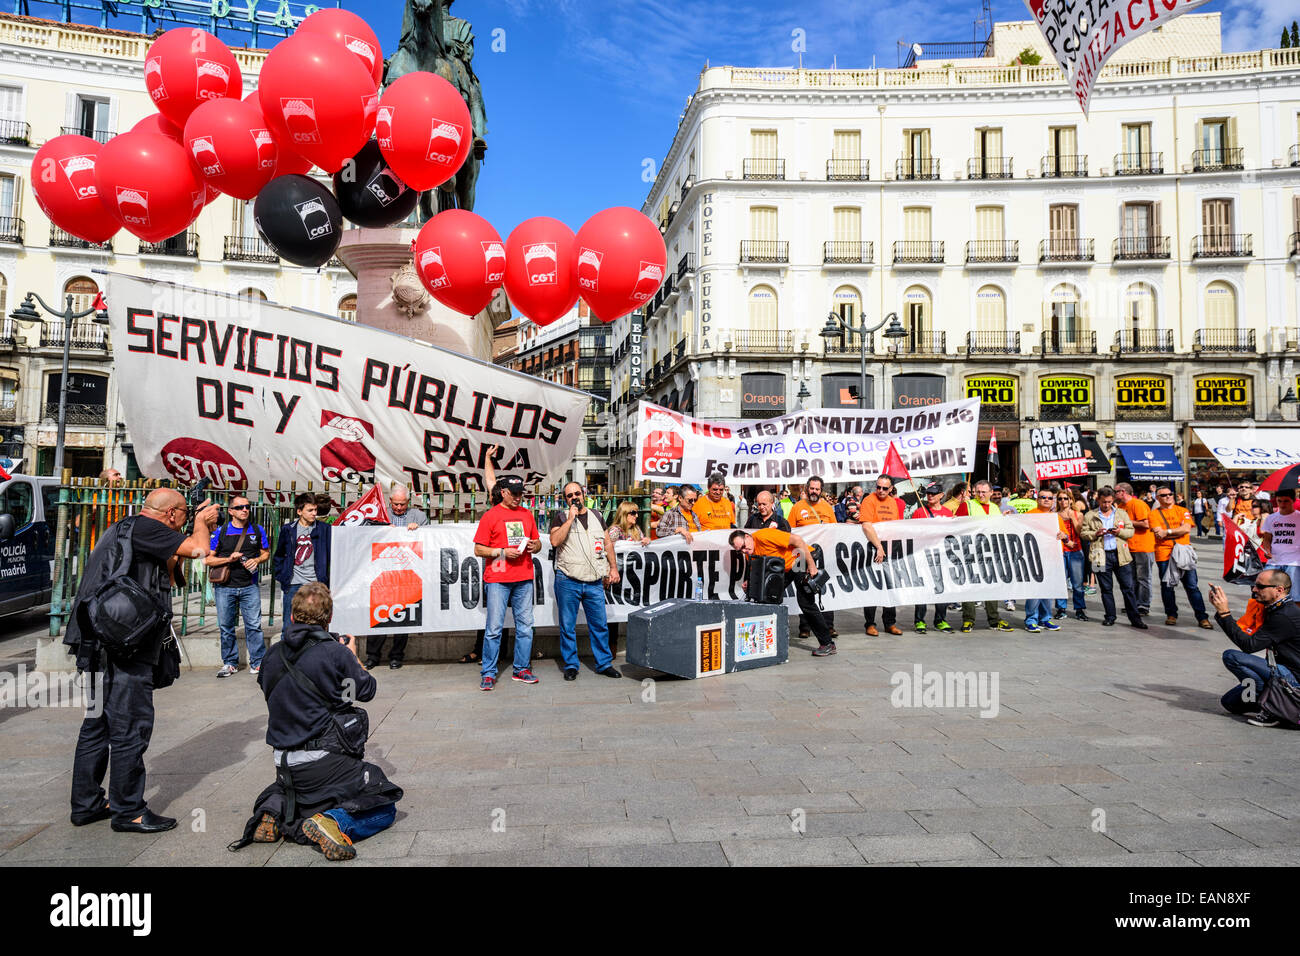 Crowds at Puerta del Sol Plaza protest the privatization of state-owned airport operator Aena Aeropuertos. - Stock Image